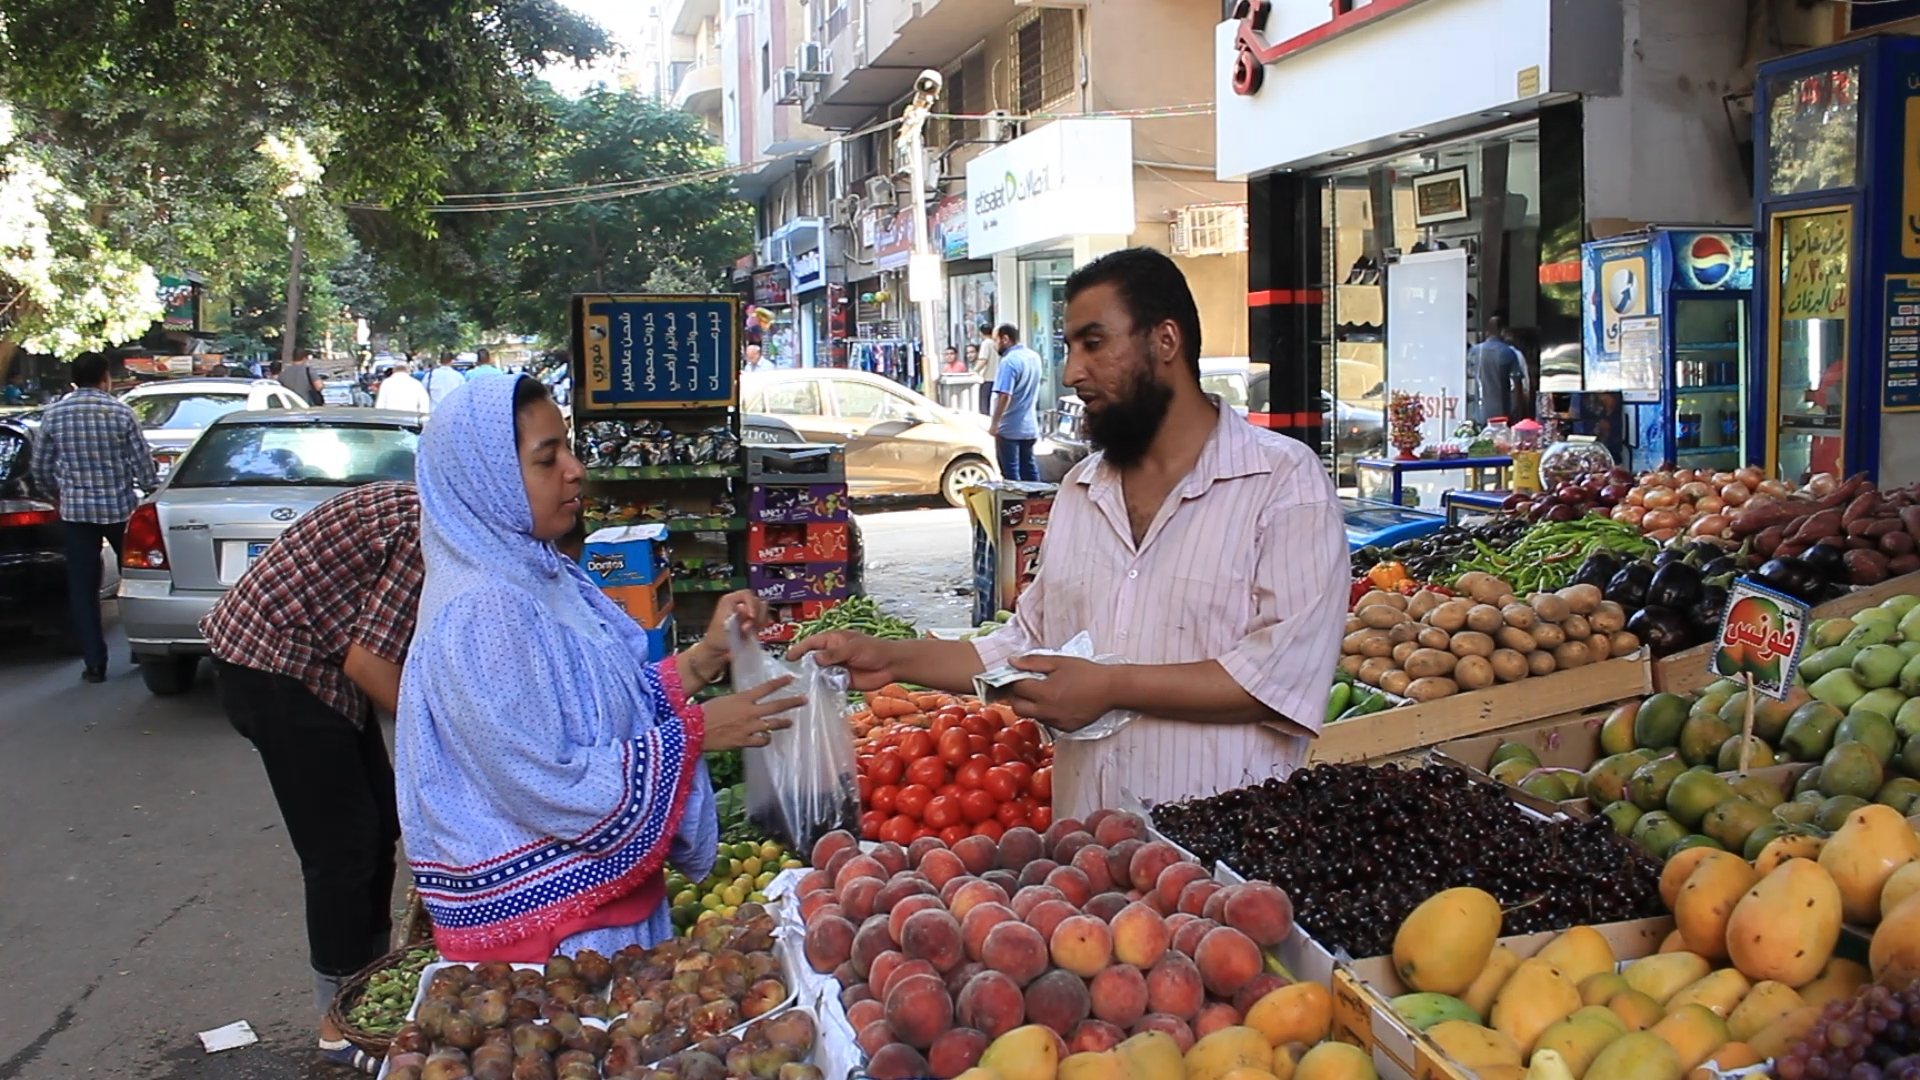 The past three months had been tough for many Egyptians, as the government introduced a series of new economic measures